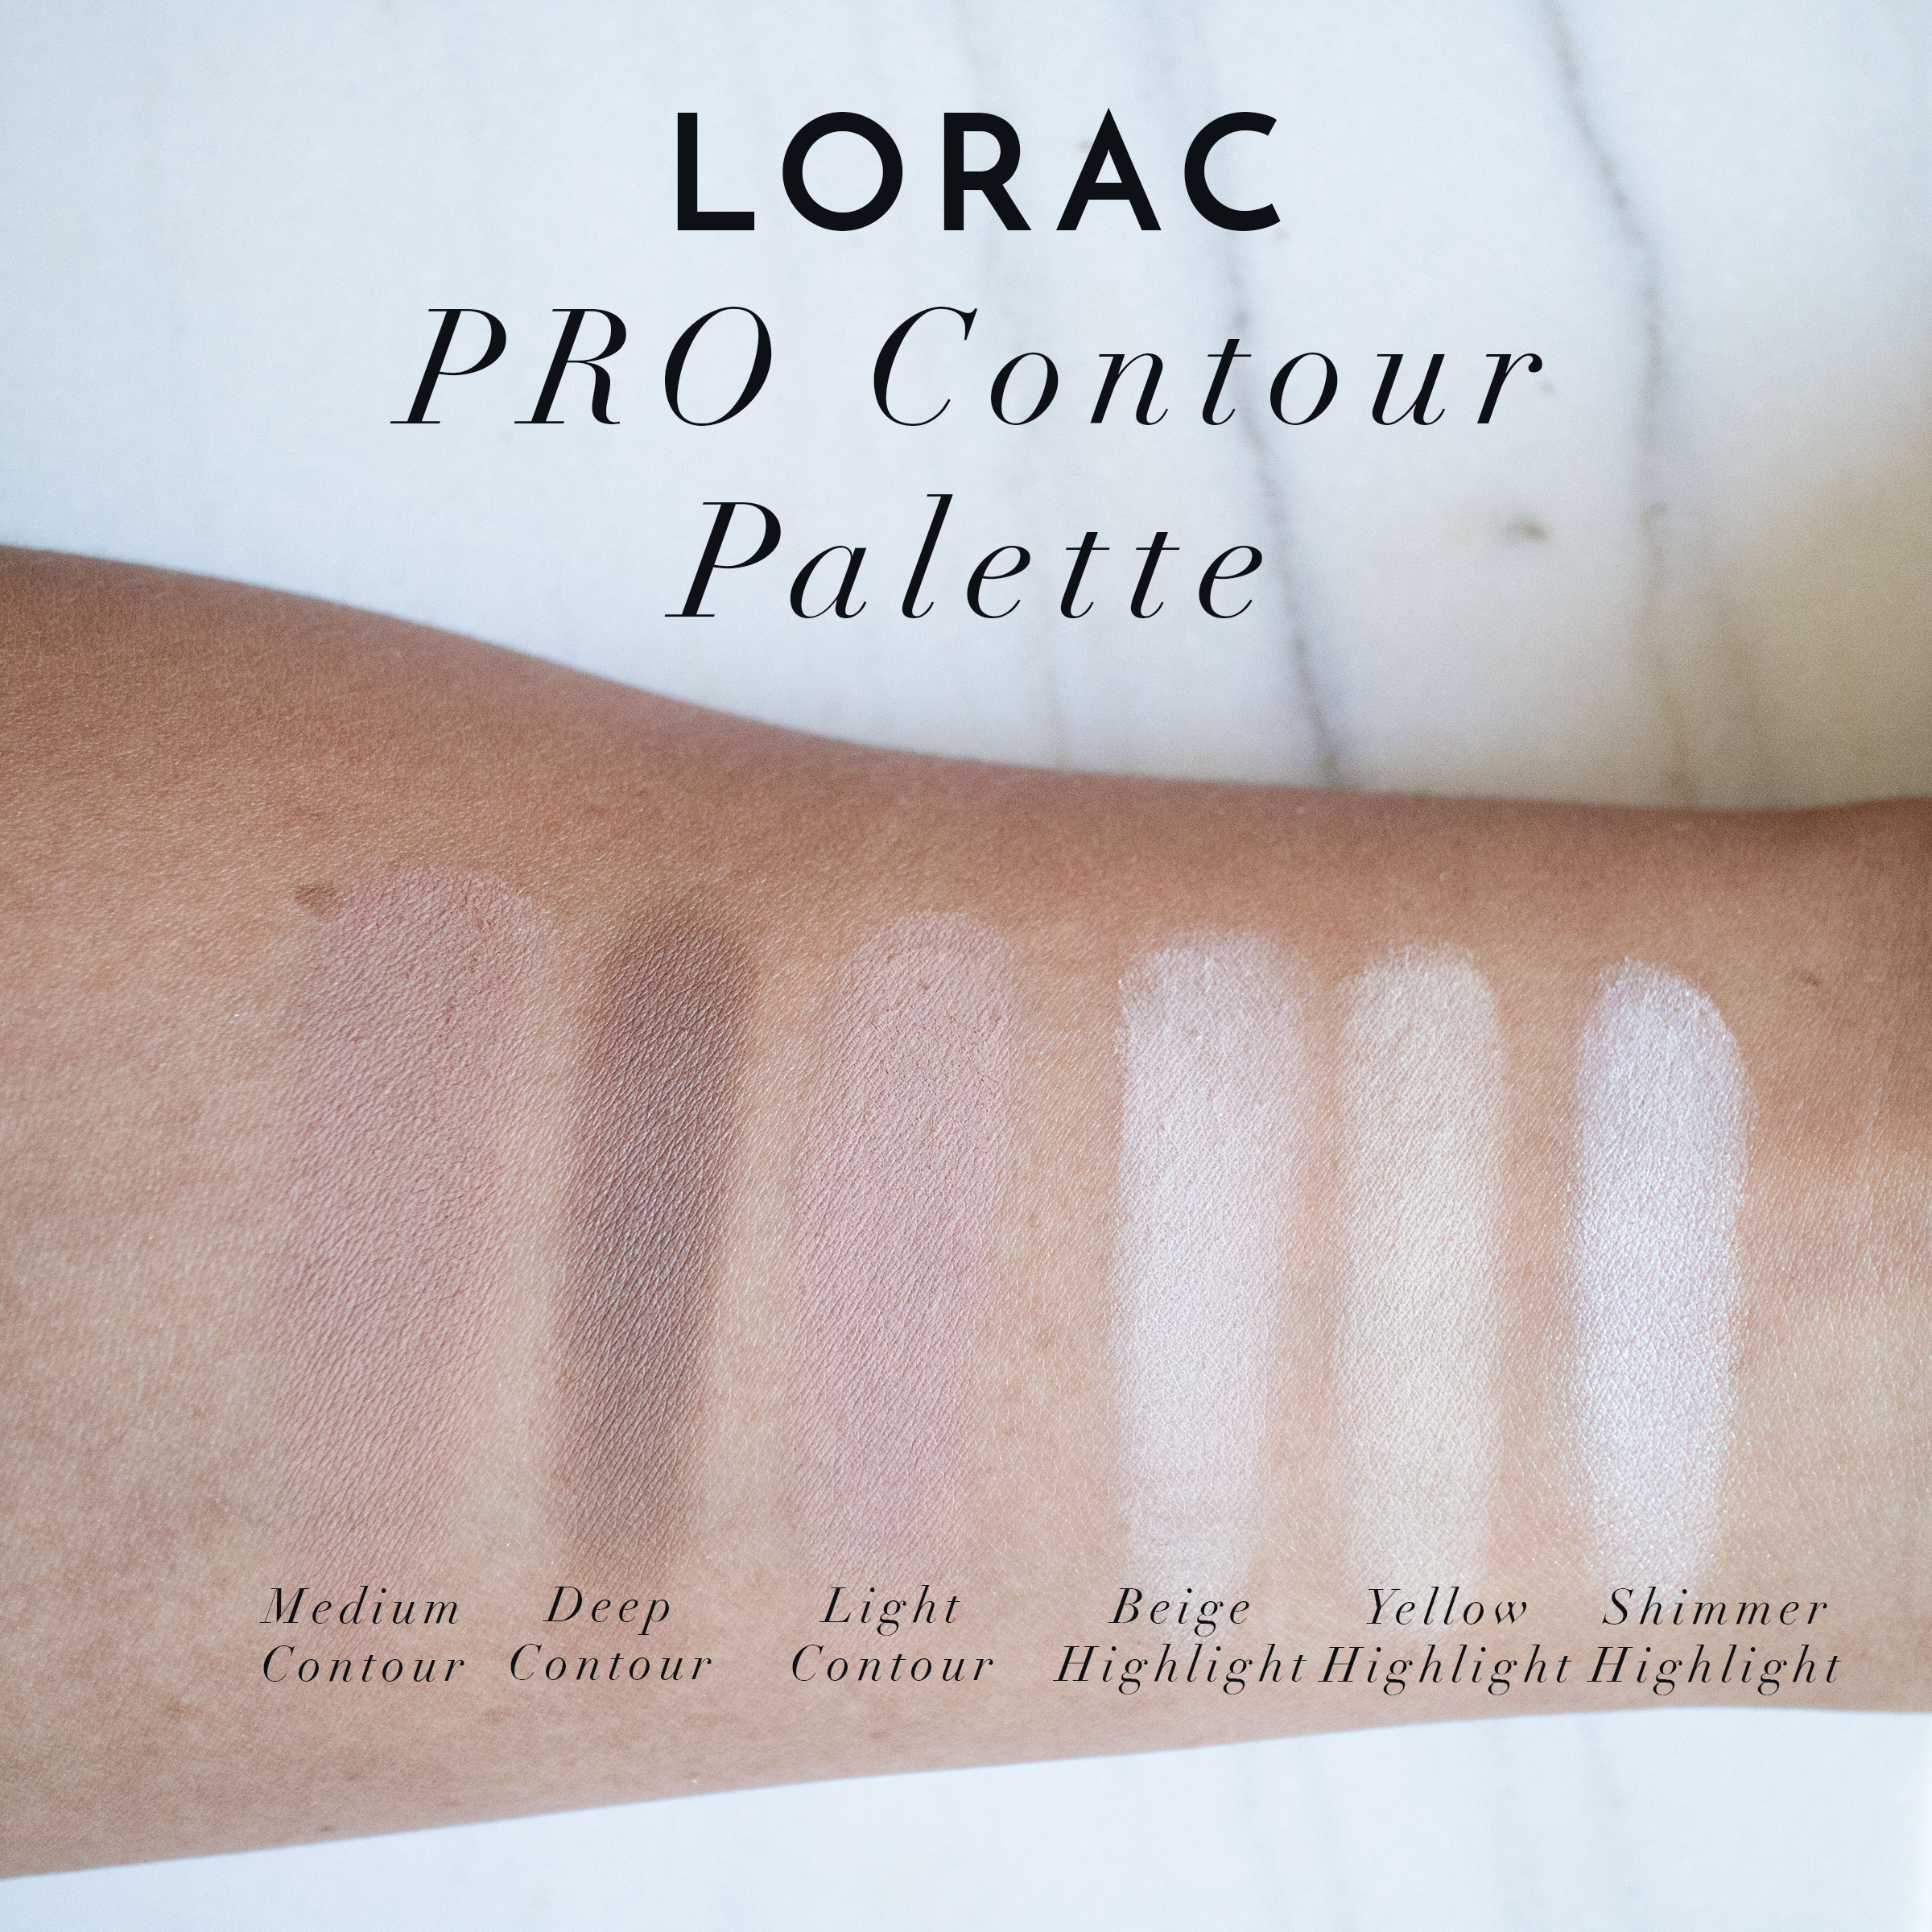 Lorac PRO Contour Palette Swatches Review - The Beauty Vanity | A ...